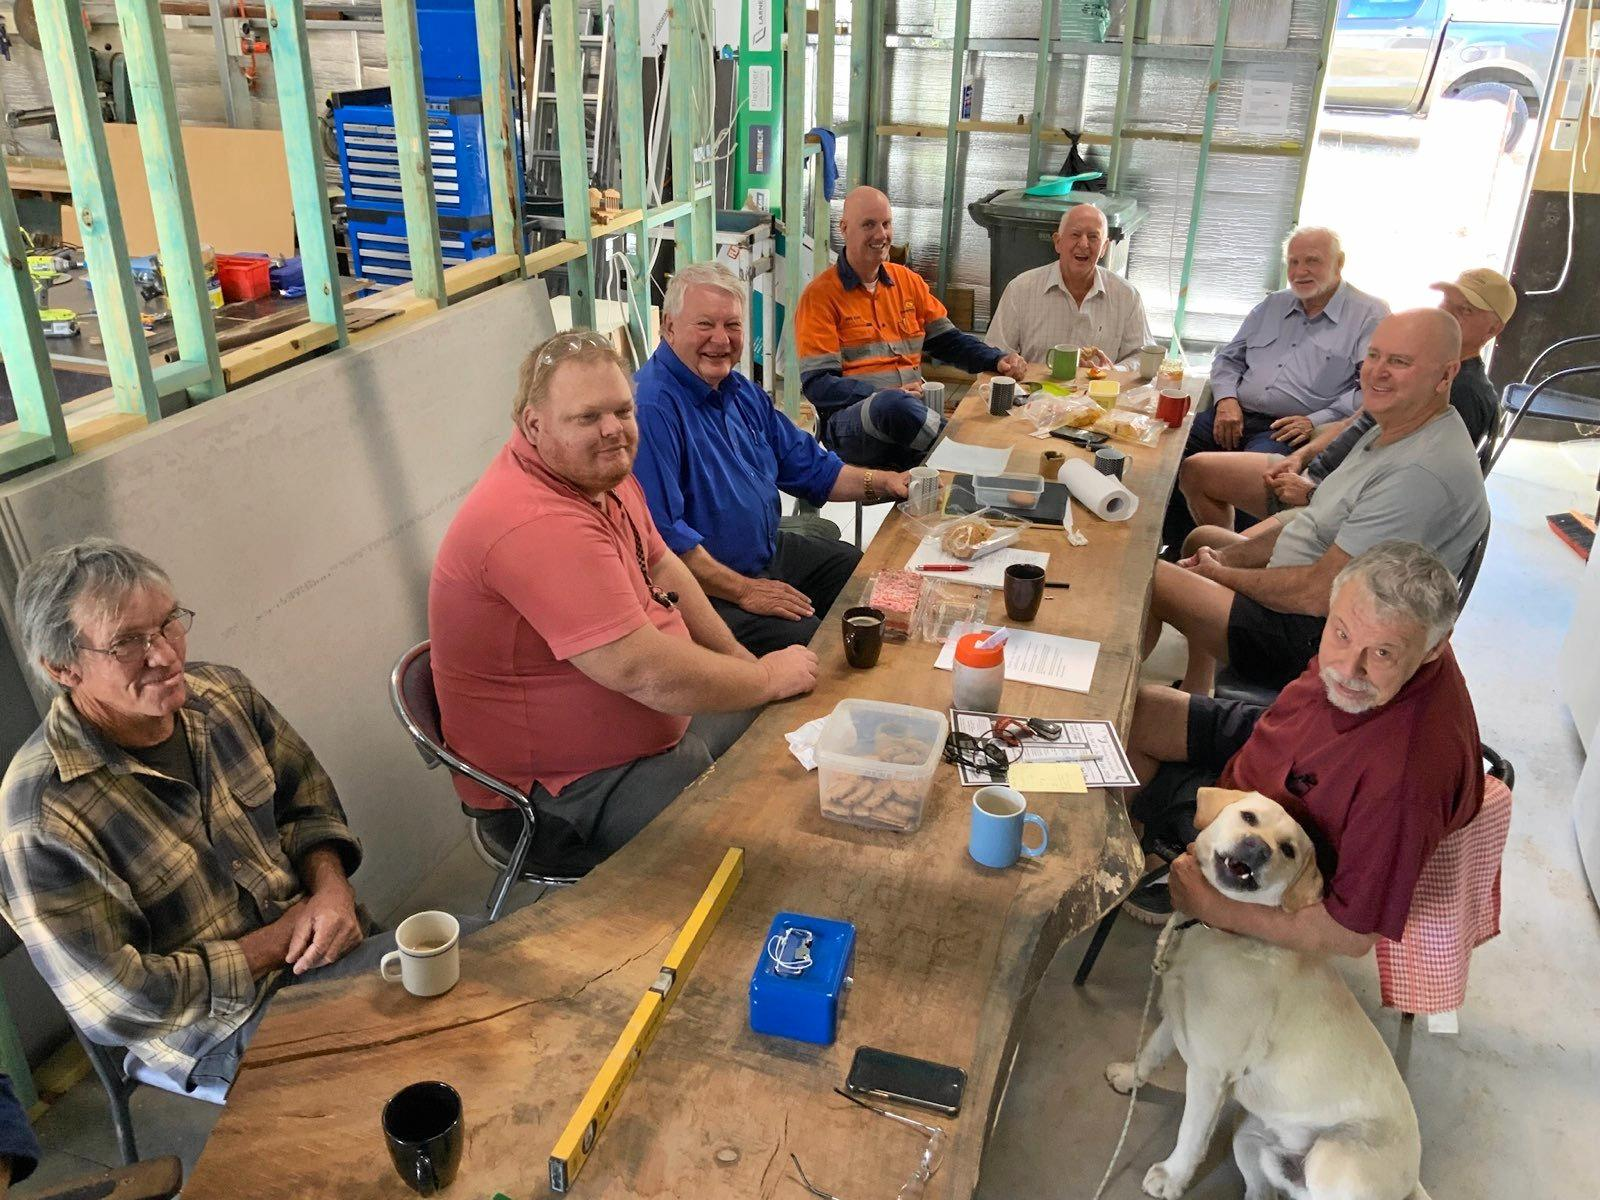 Member for Flynn Ken O'Dowd with members of the Mount Perry Men's Shed during the election campaign.